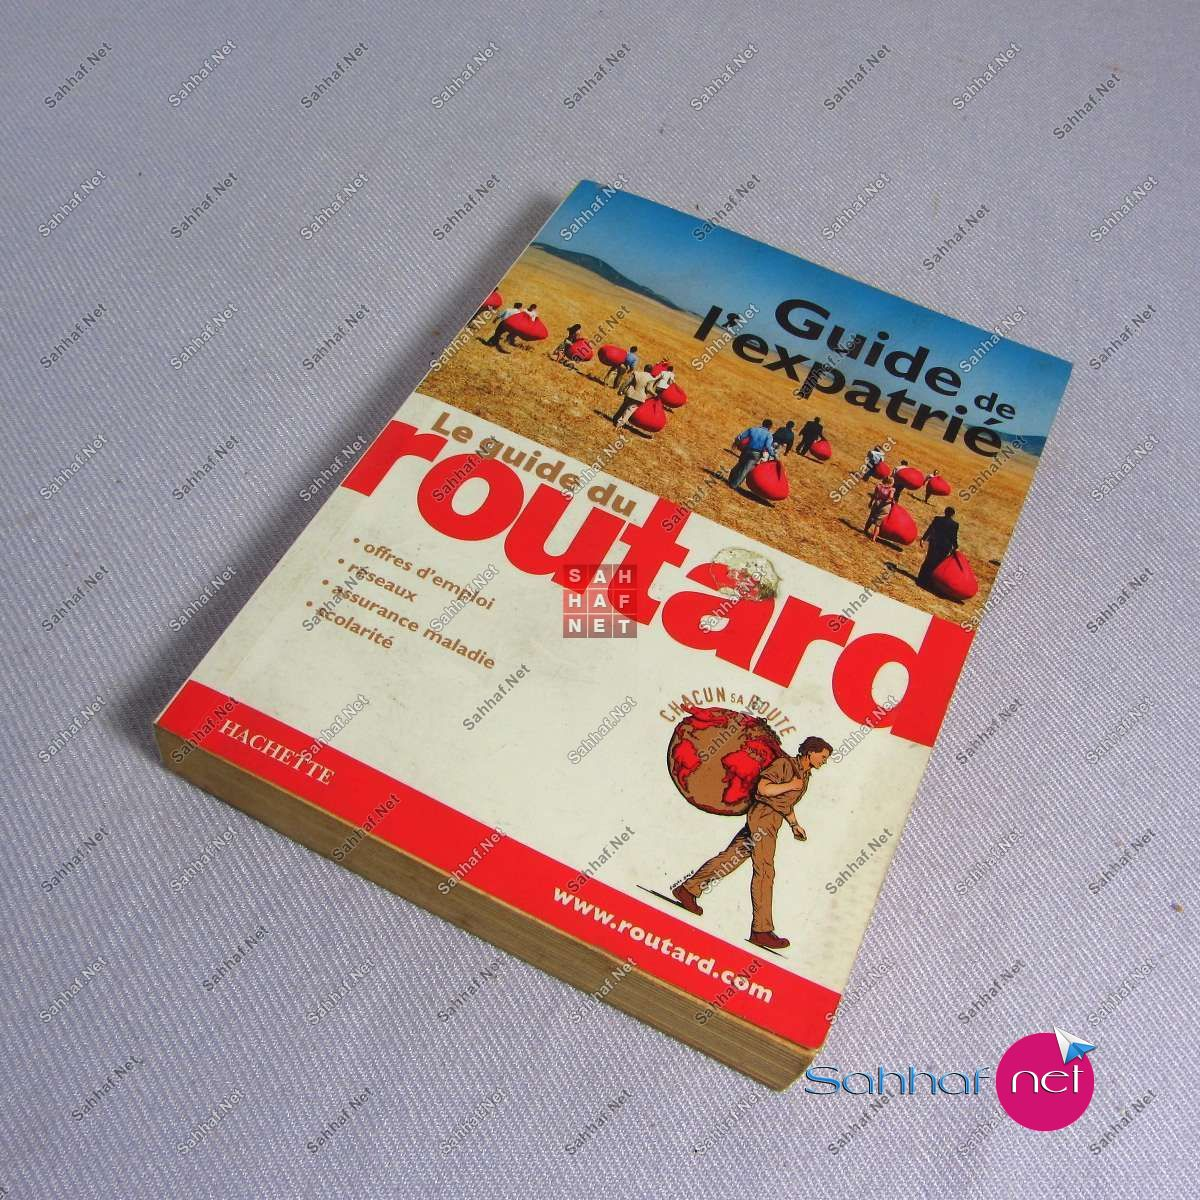 LE GUIDE DU ROUTARD Kitap